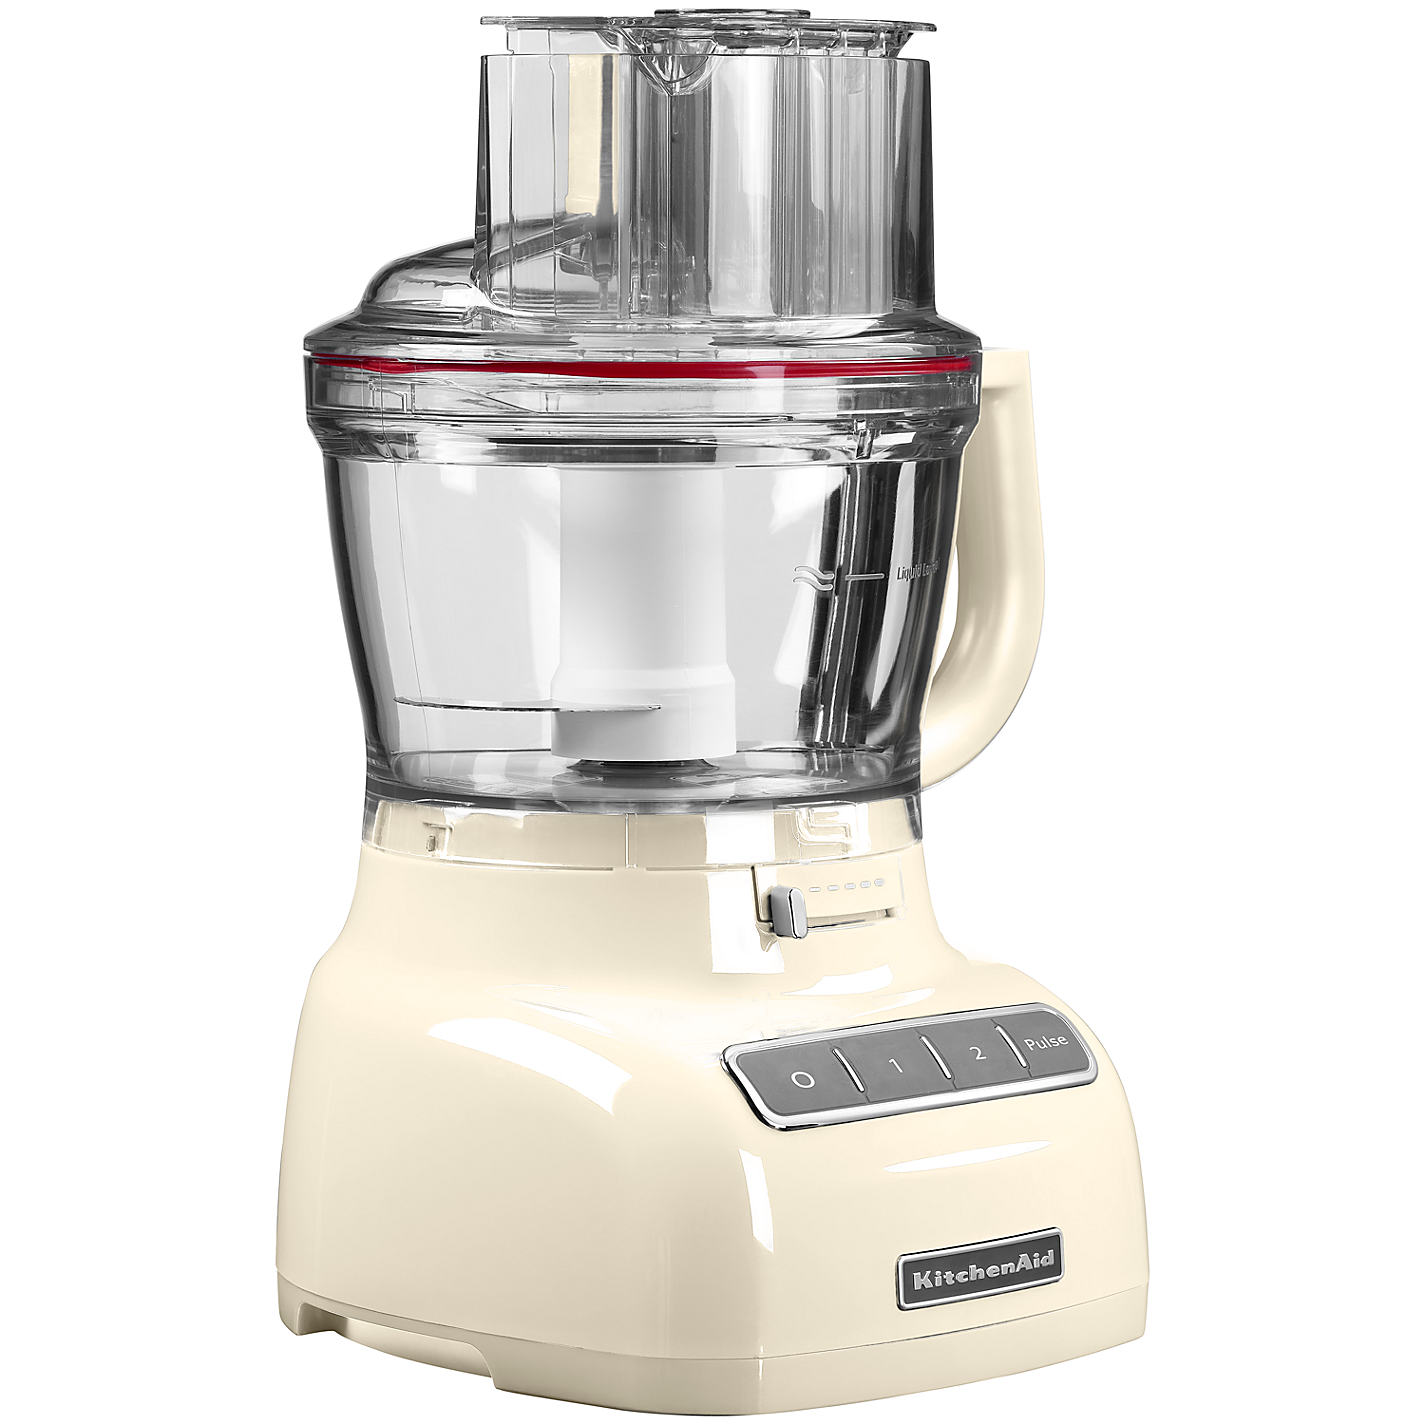 kitchenaid 5kfp1335bac0 3 1l 300w food processor ebay